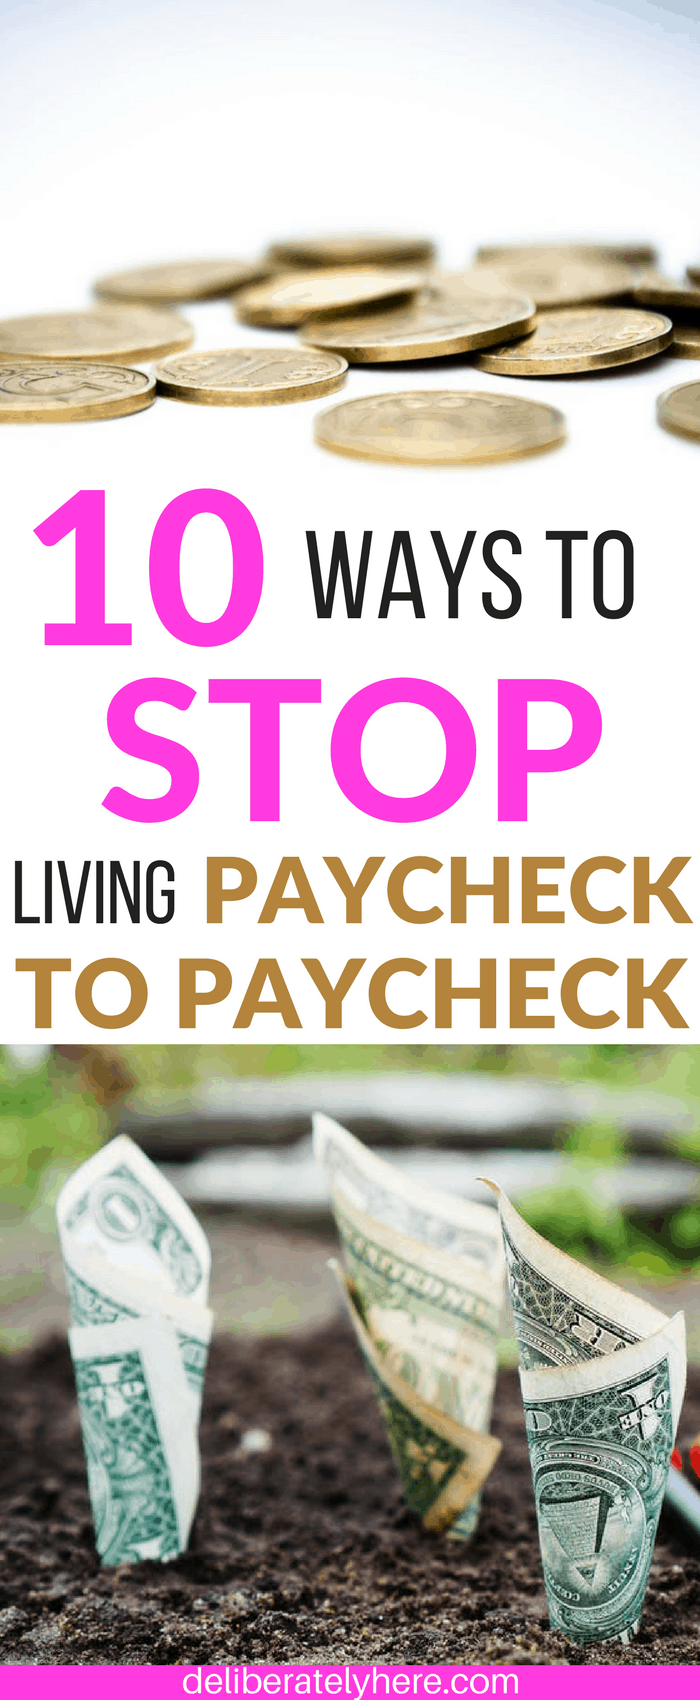 How to Stop Living Paycheck to Paycheck & Gain Financial Freedom Today. Free Budget Guide Printable